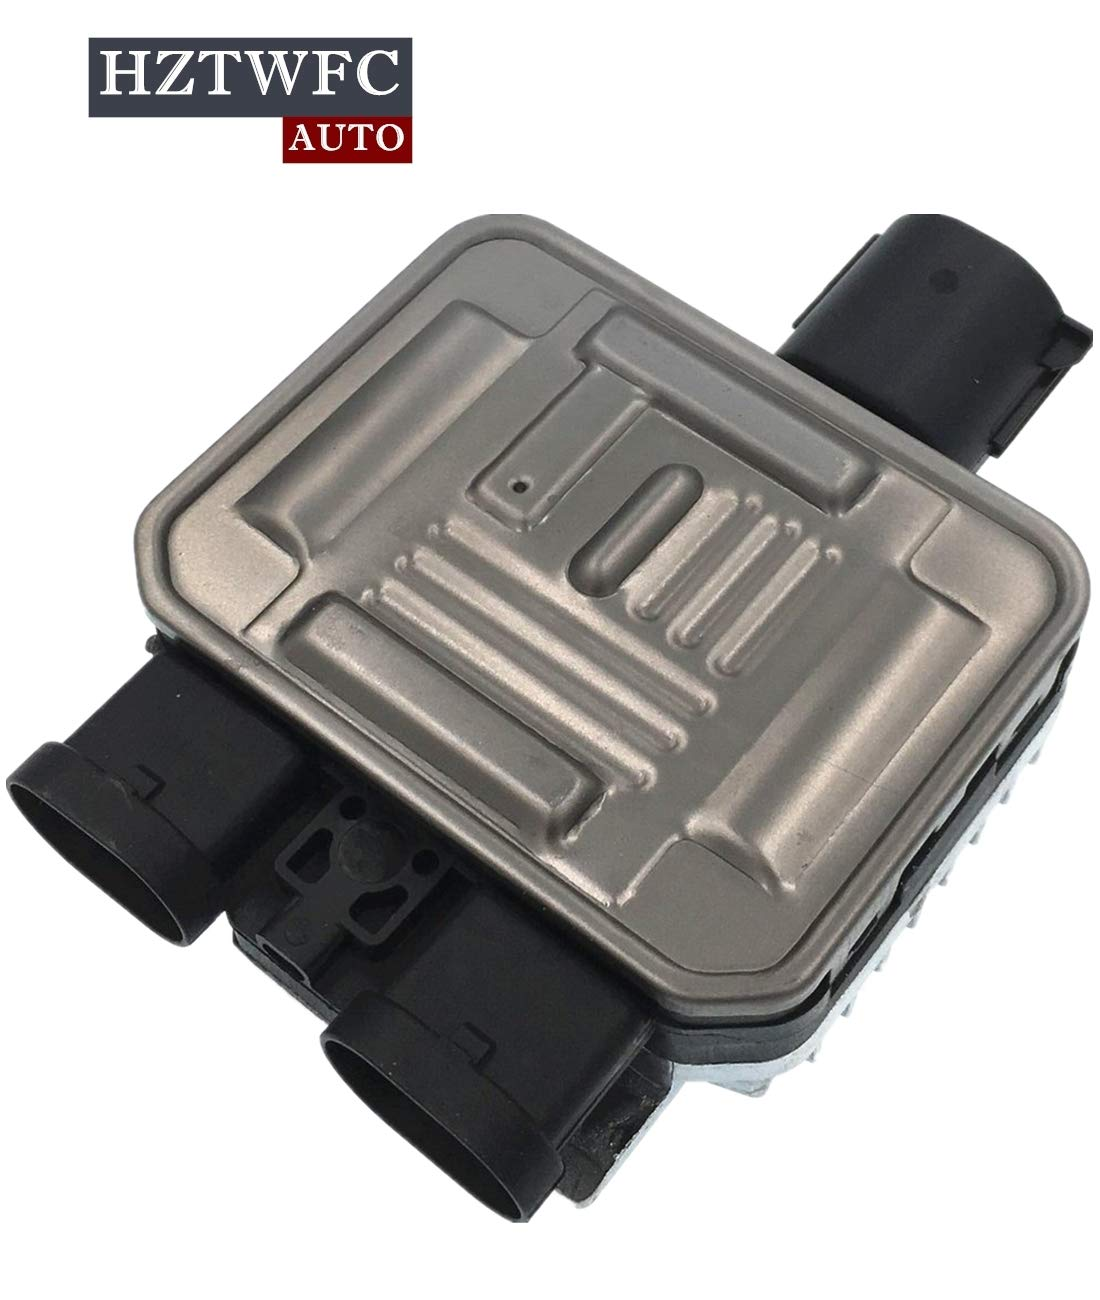 HZTWFC Radiator Cooling Fan Control Module Relay ECU 940009402 Compatible for Volvo Jaguar FORD Land Rover